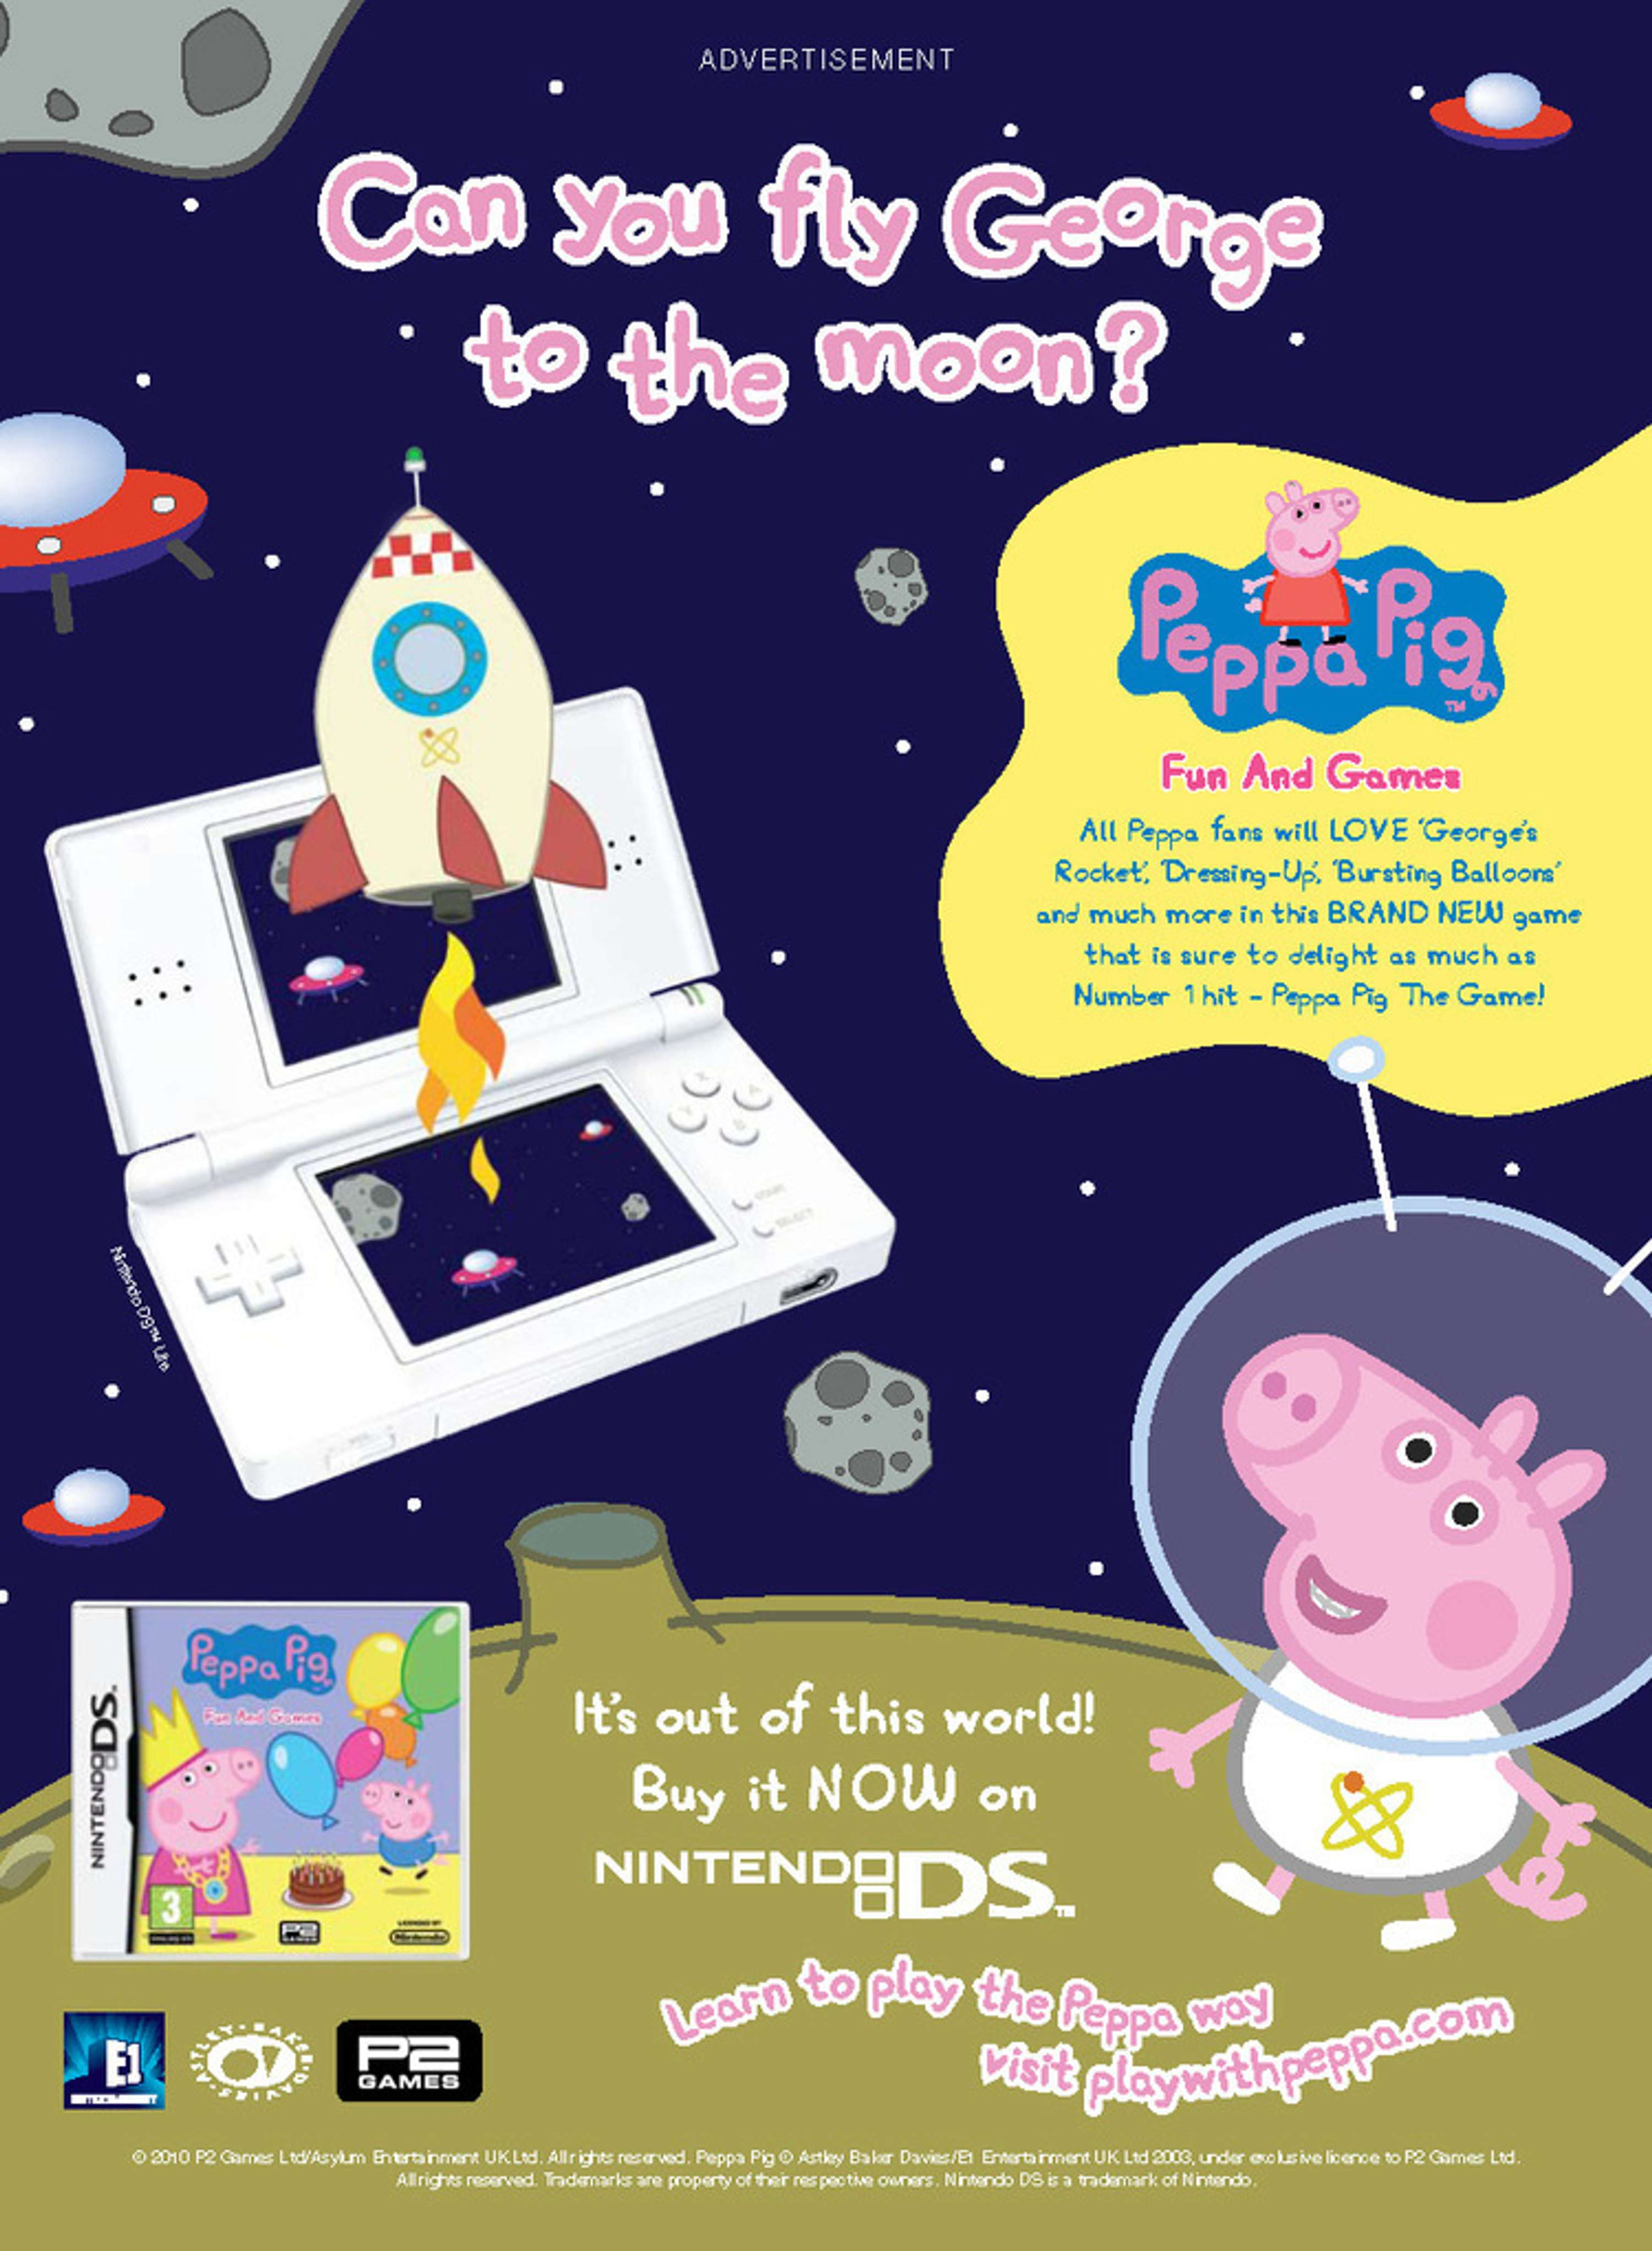 Peppa Pig Integrated Campaign The Dots